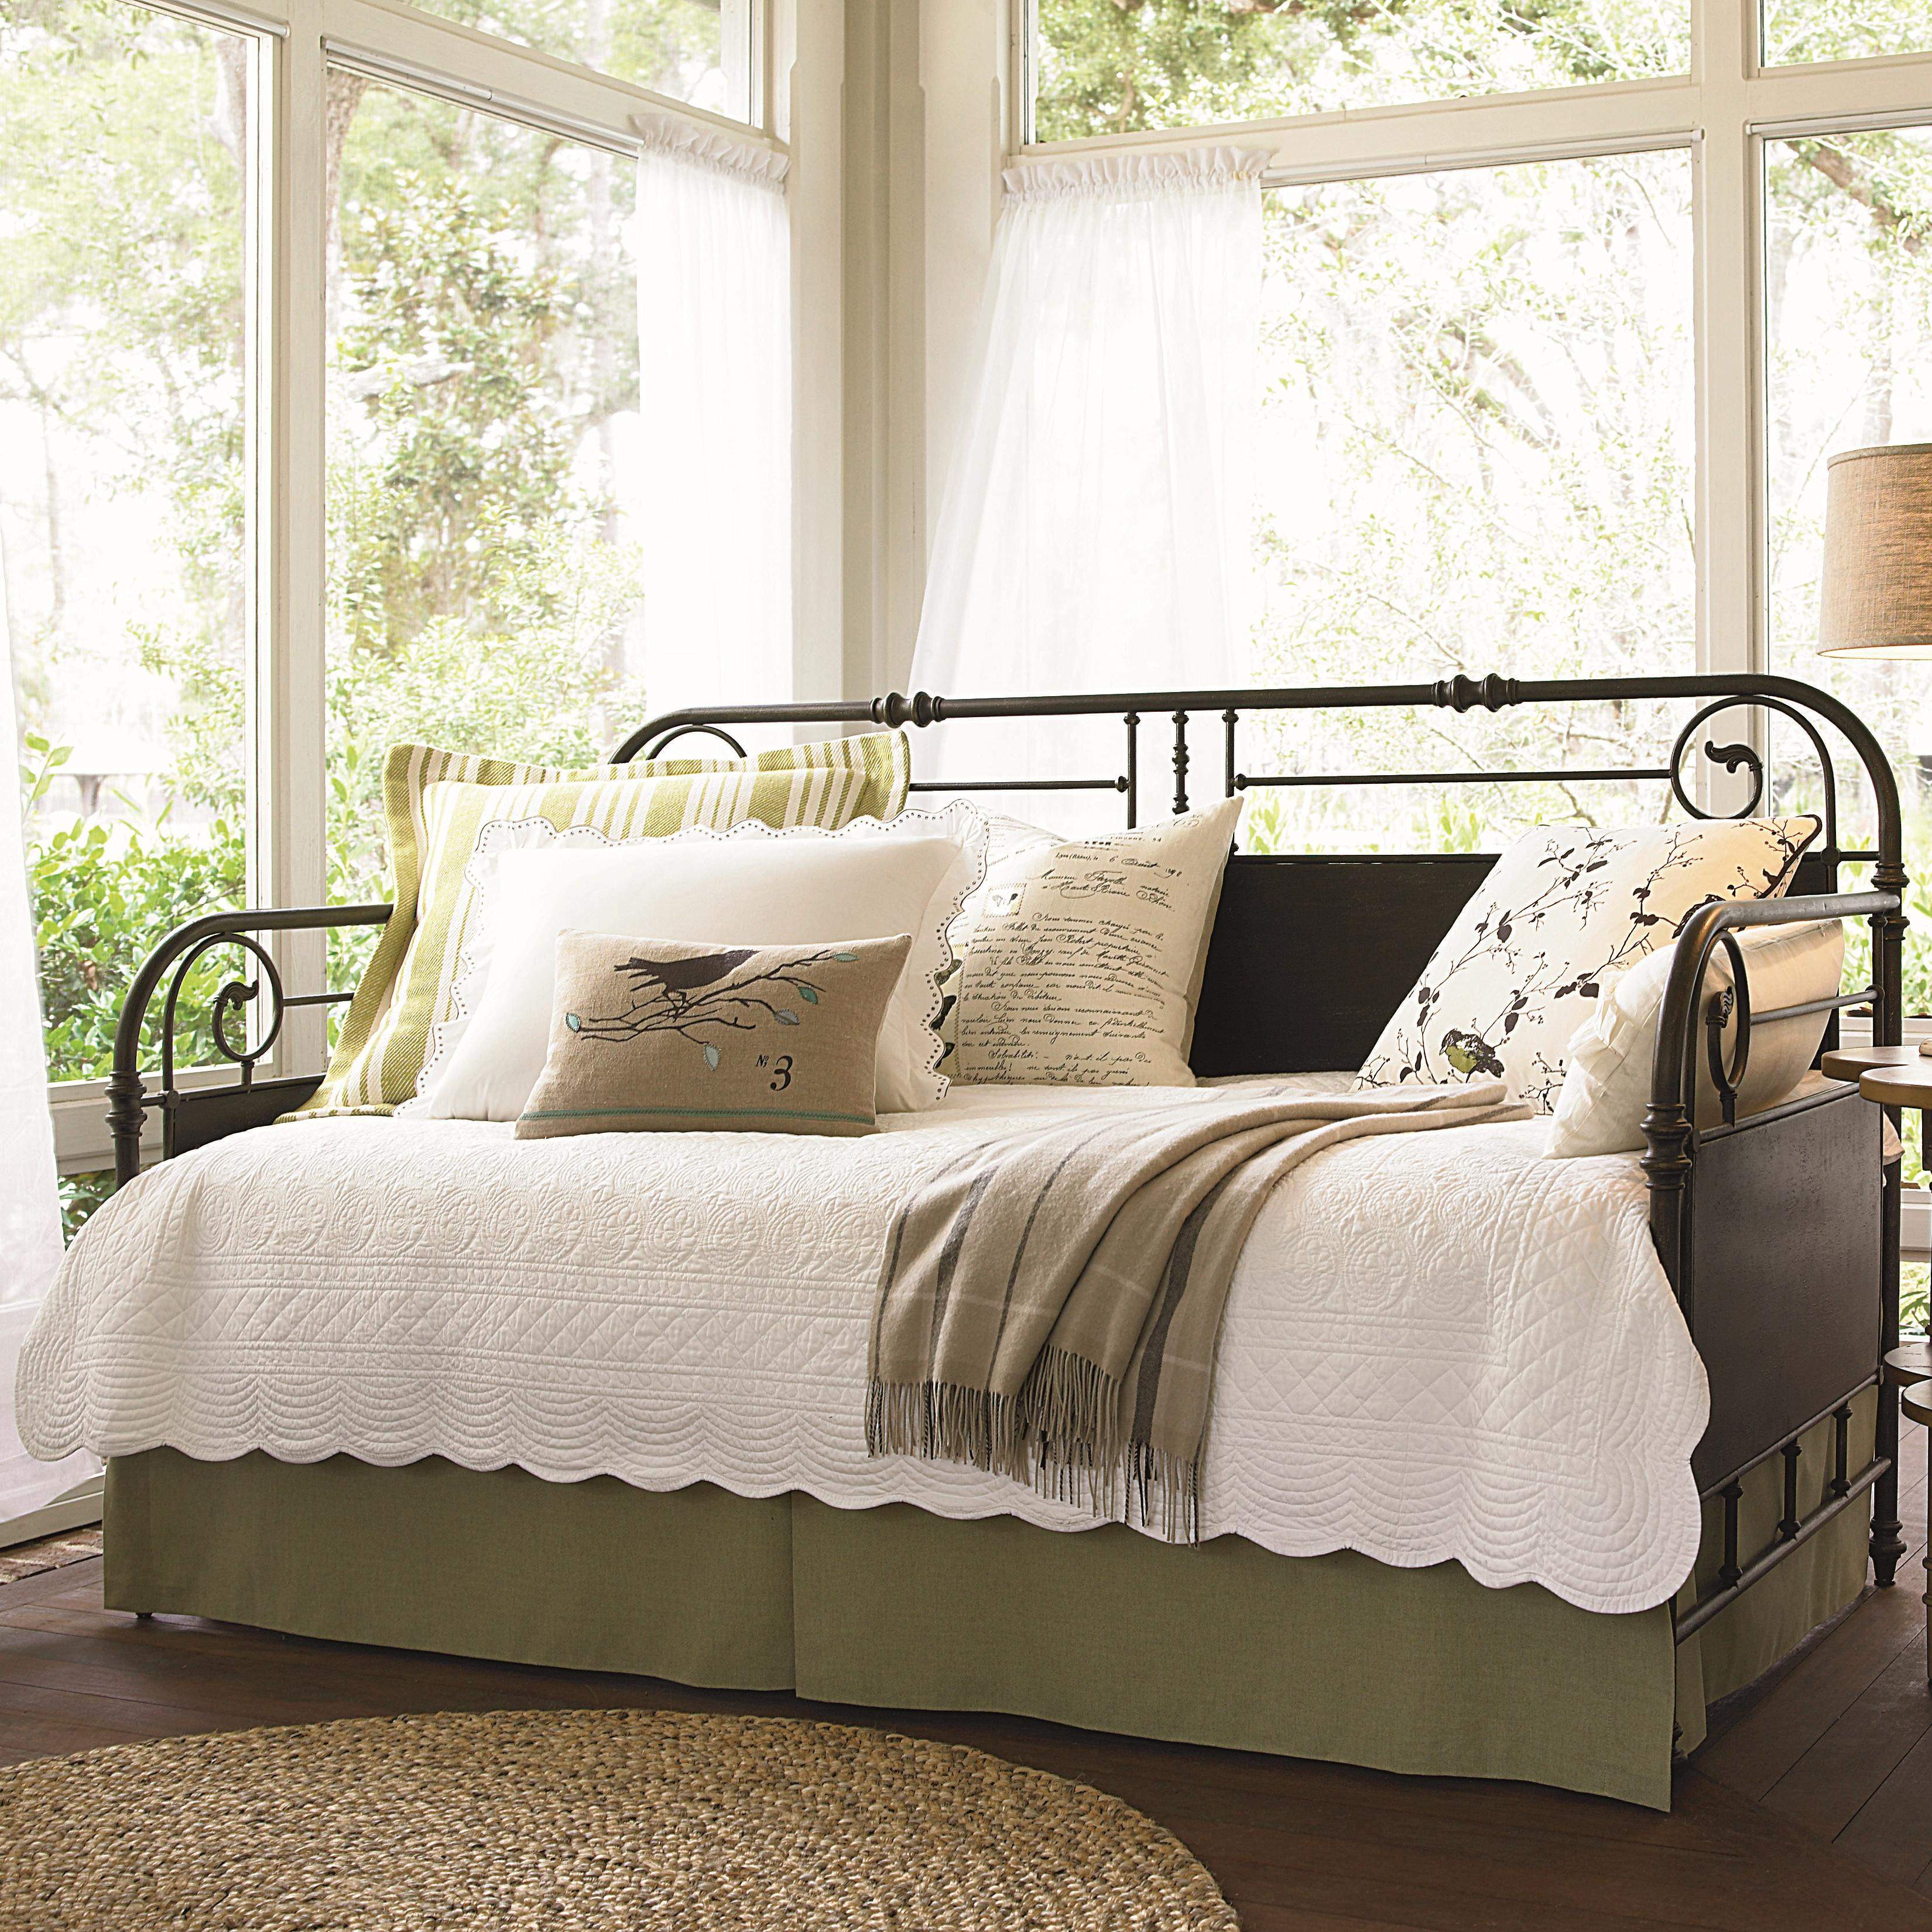 Paula Deen by Universal Down Home Garden Gate DayBed - Item Number: 192200